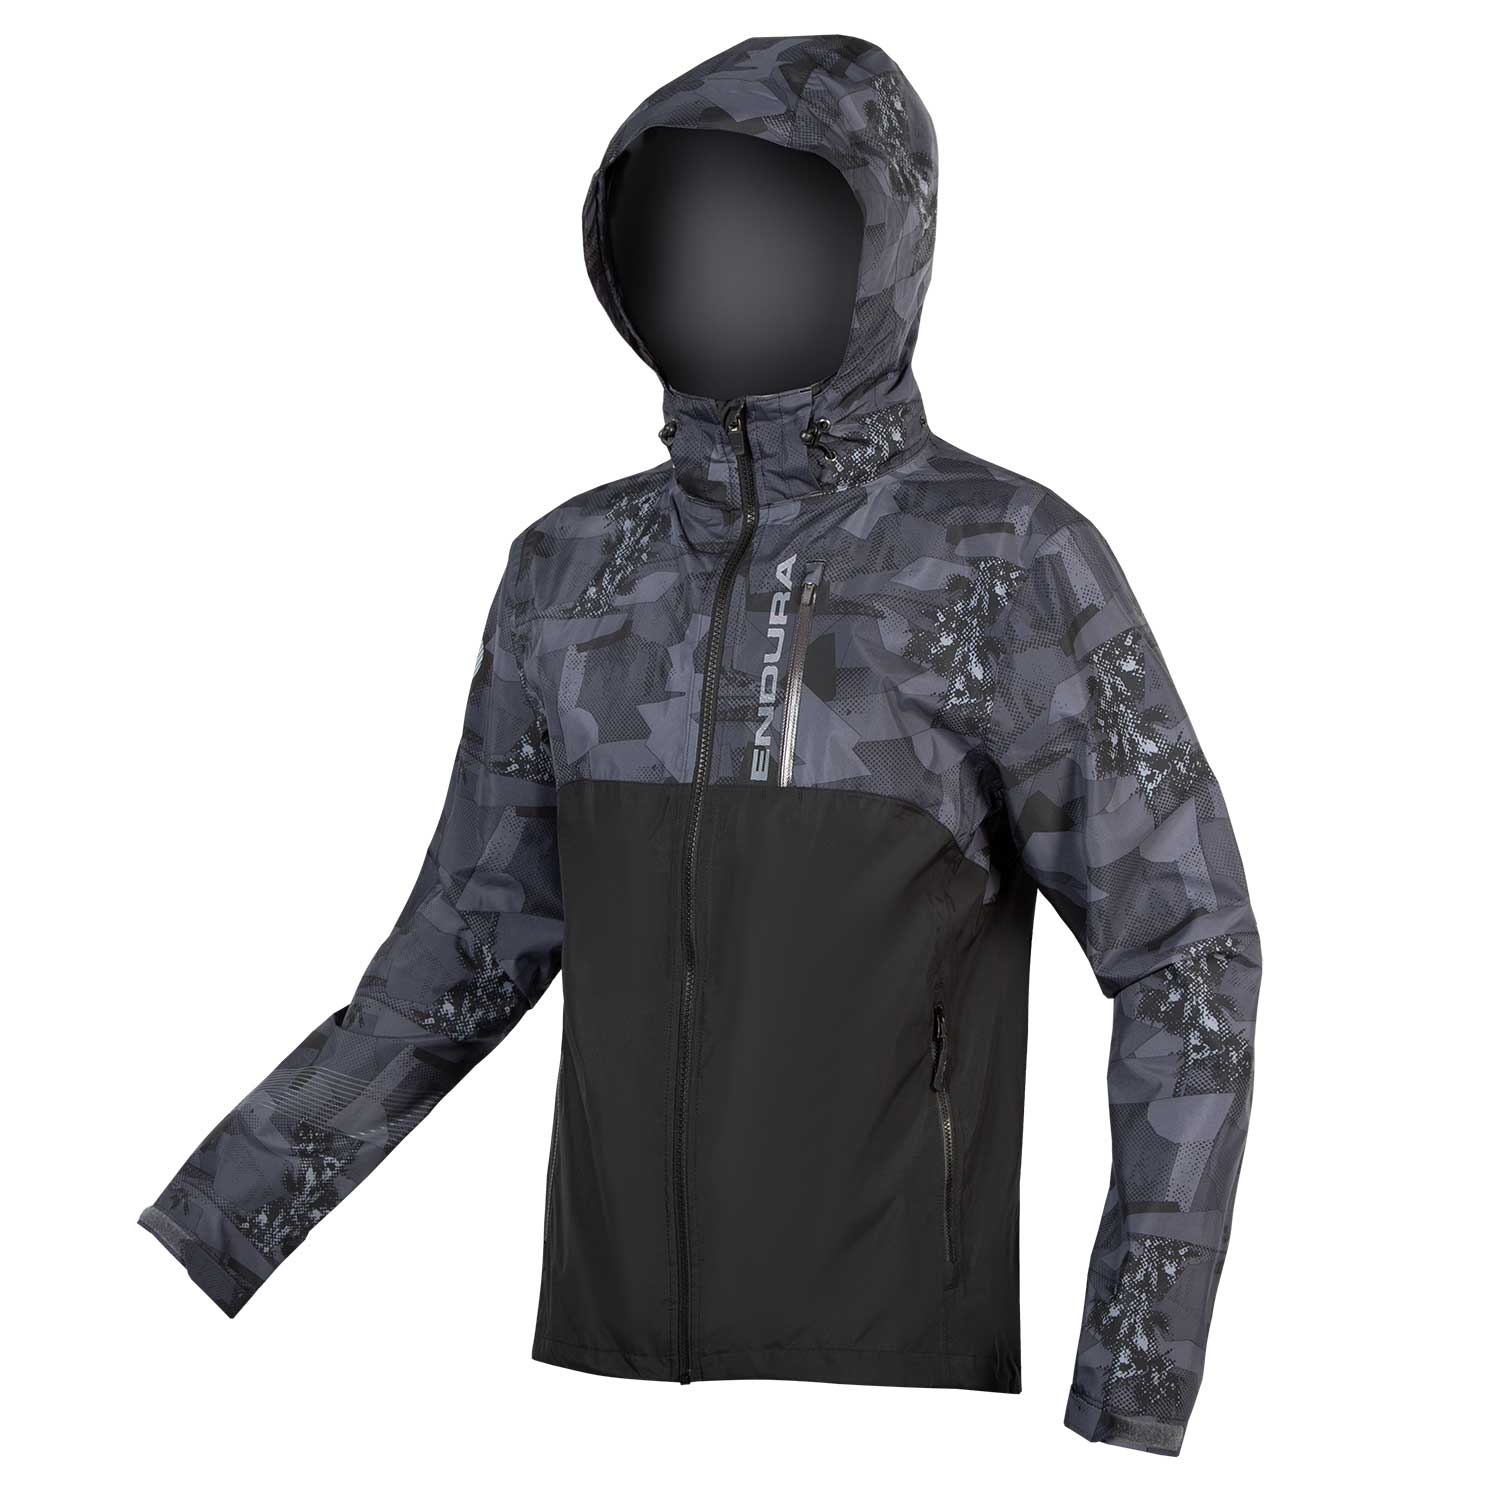 Endura Singletrack jacket 2